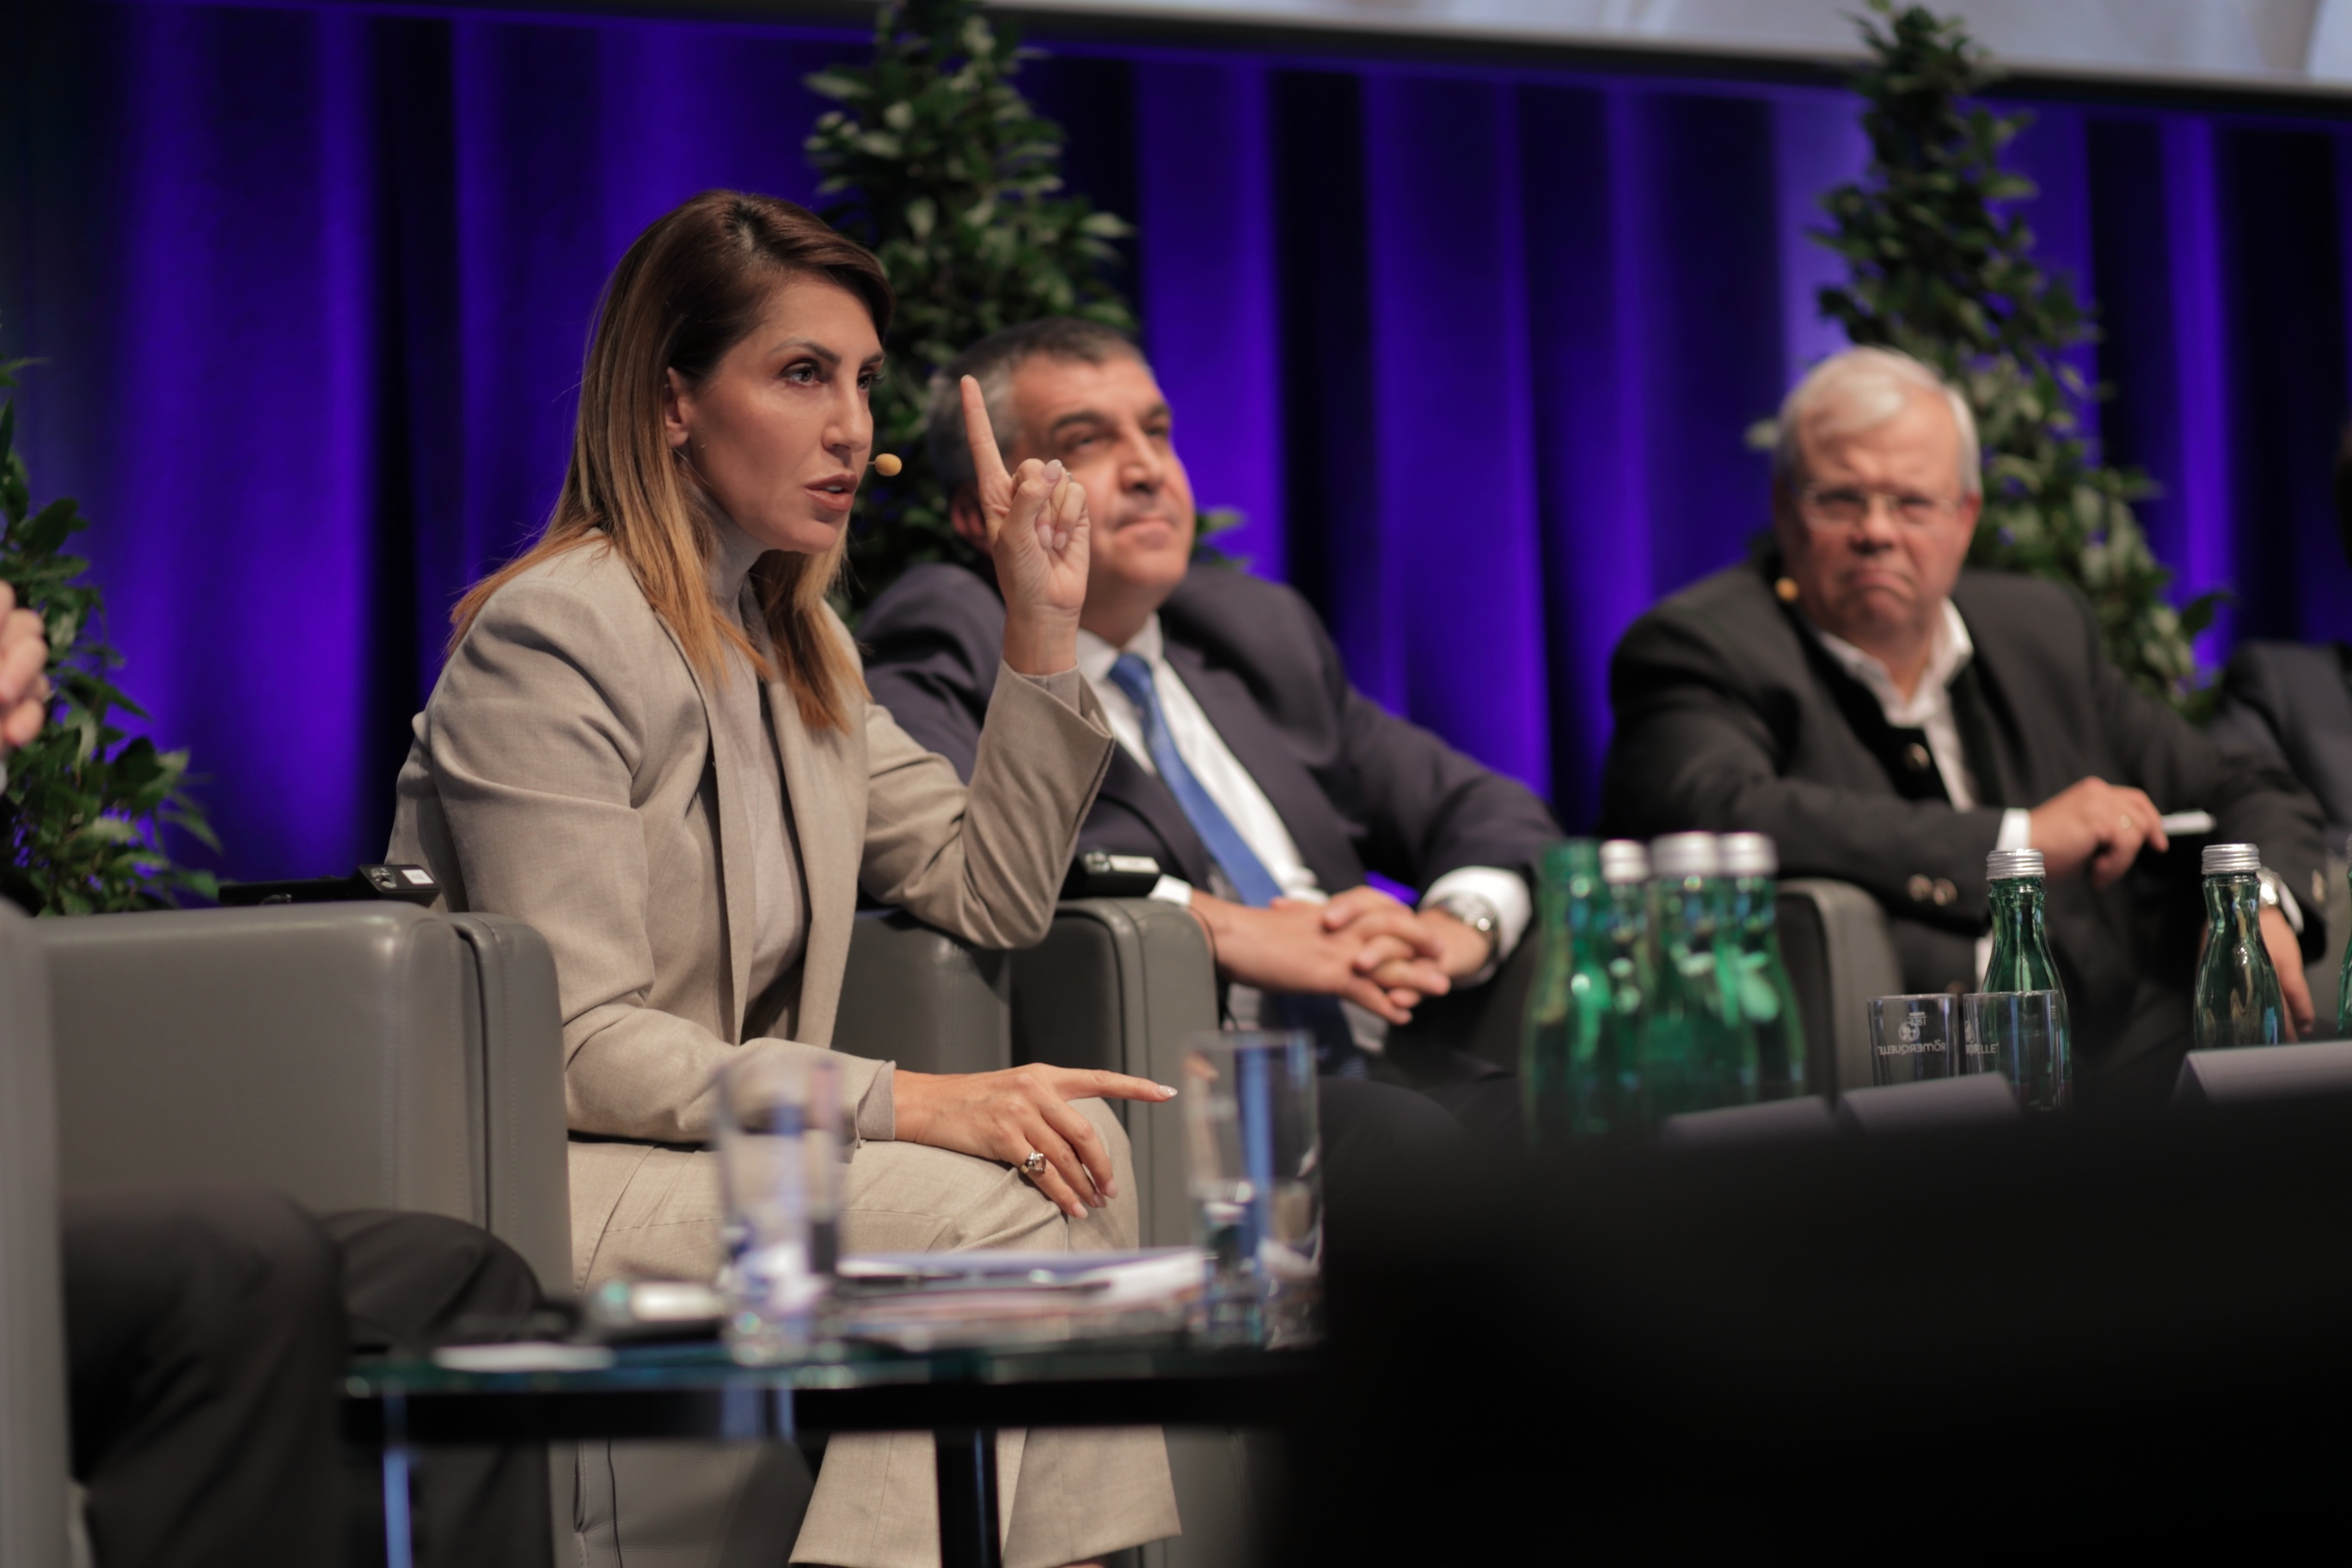 Majlinda Bregu, RCC Secretary General takes part at the 'Peace on the Western Balkans - Peace in Europe' panel session of the 15th Salzburg Europe Summit, in Salzburg, Austria, on 6-8 October 2019. (Photo: Elmas Libohova)